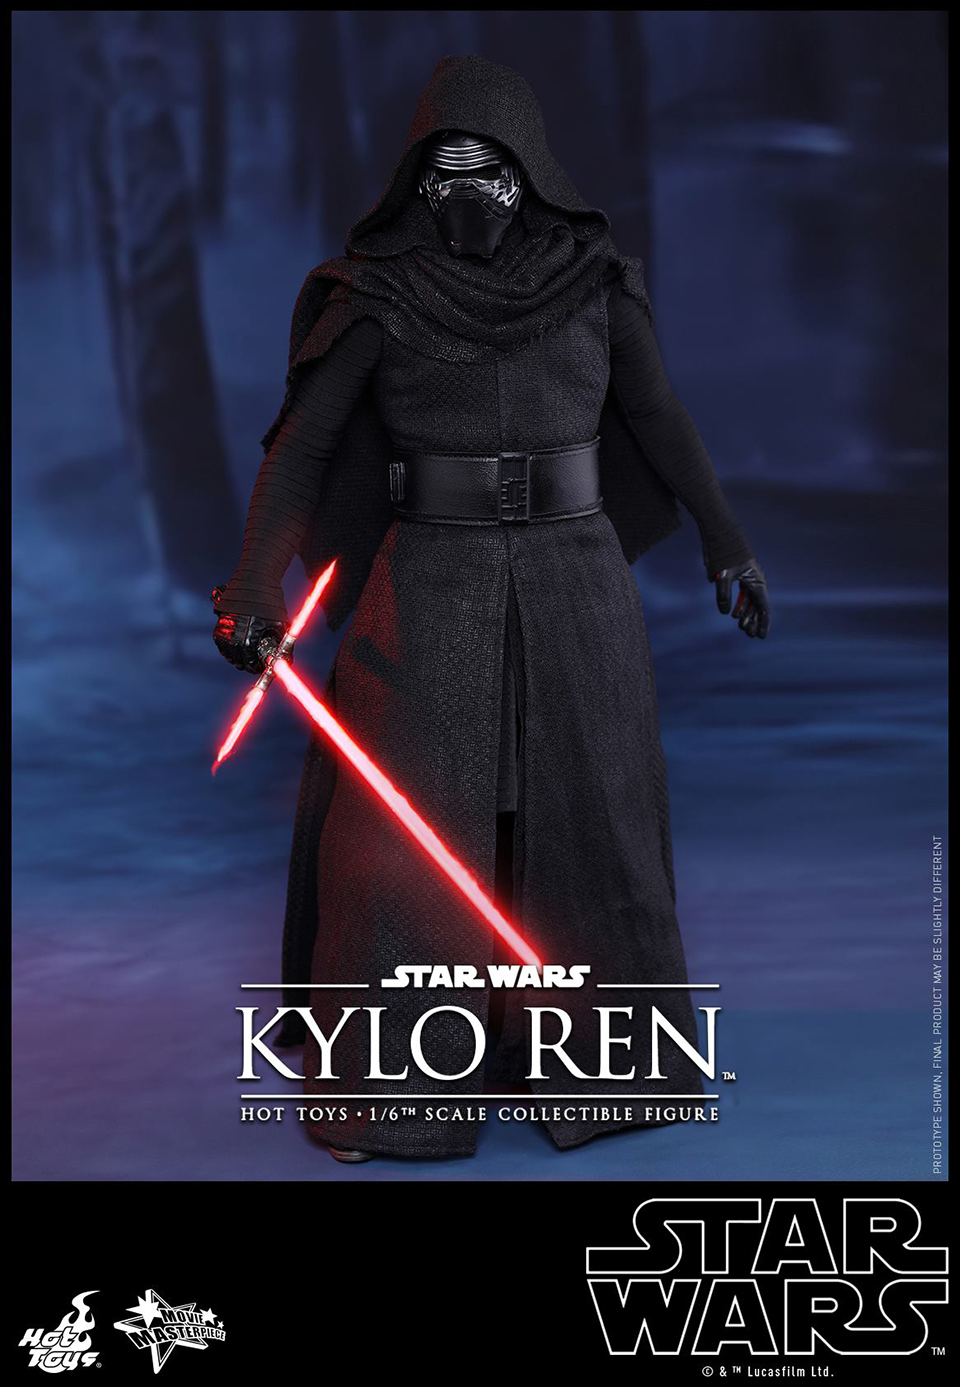 Hot Toys Kylo Ren 1:6 Scale Action Figure